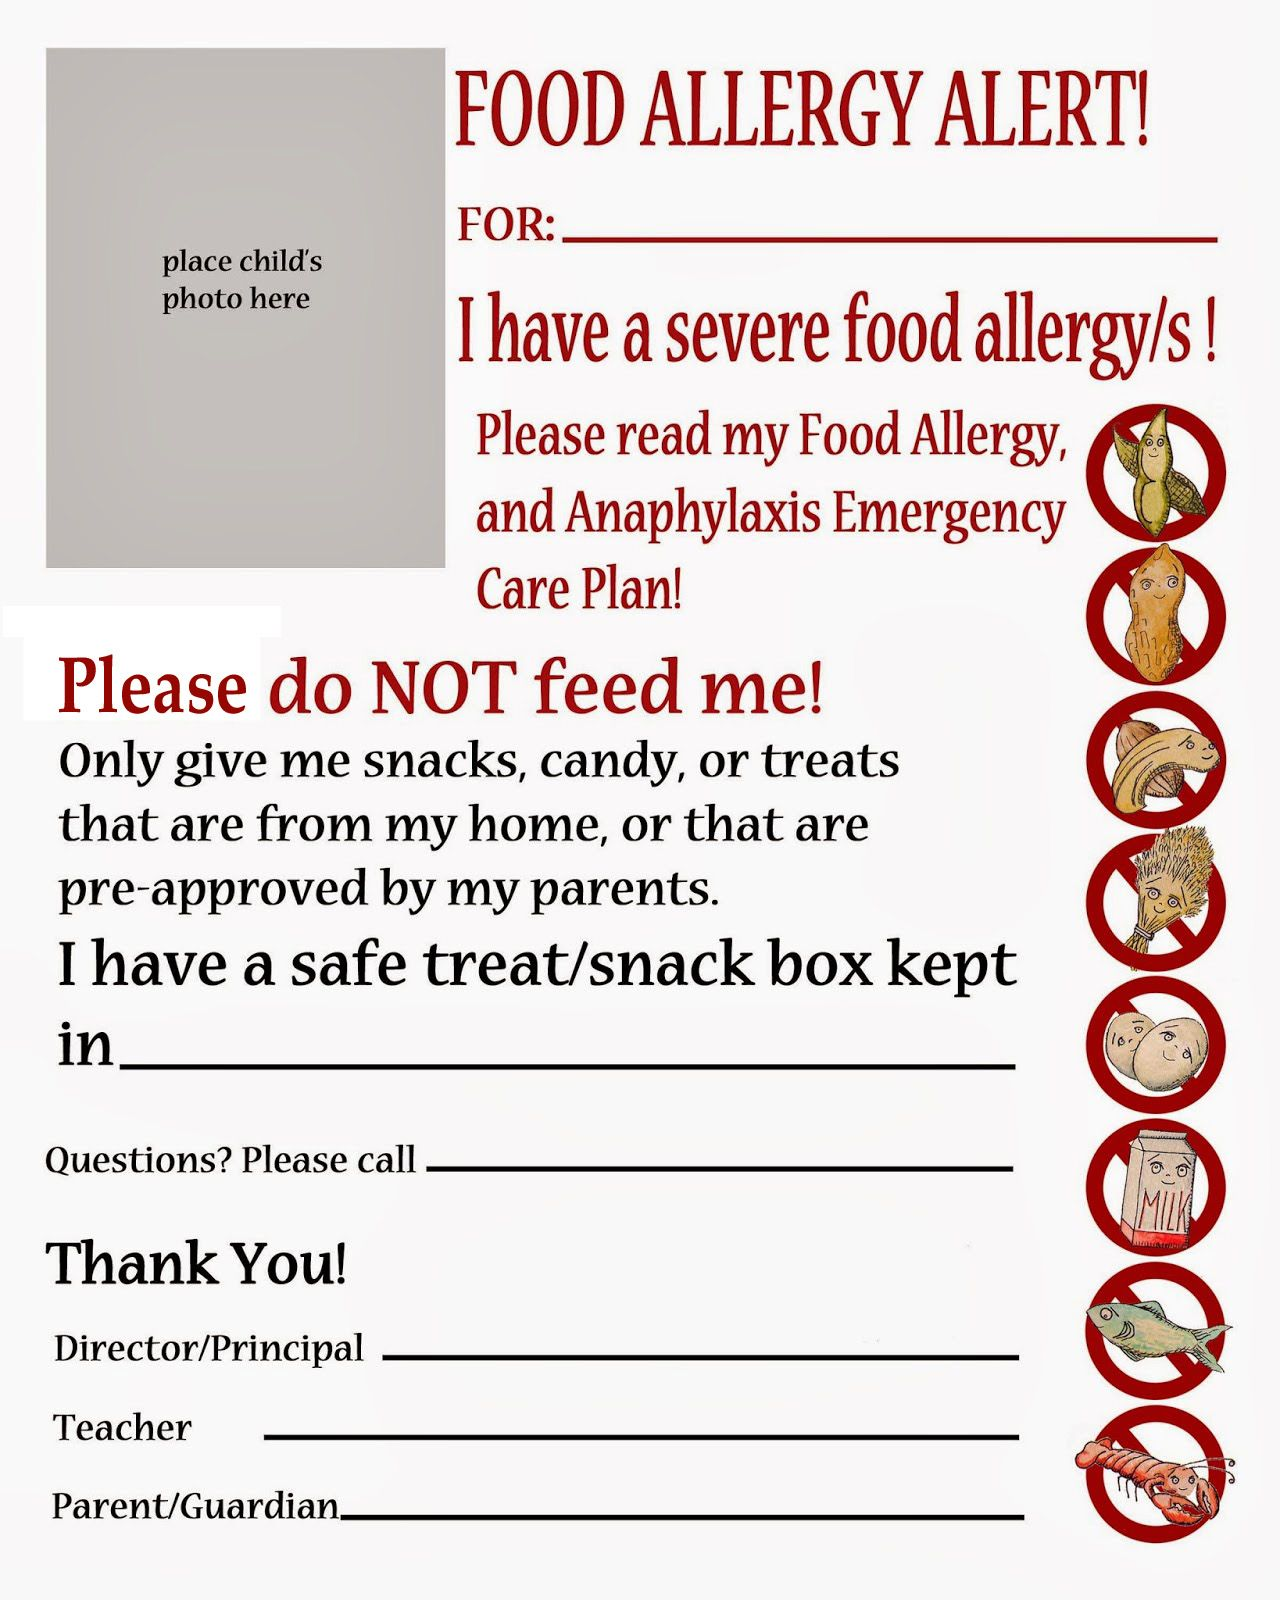 Thriving With Allergies: Food Allergy Alert Daycare and School ...